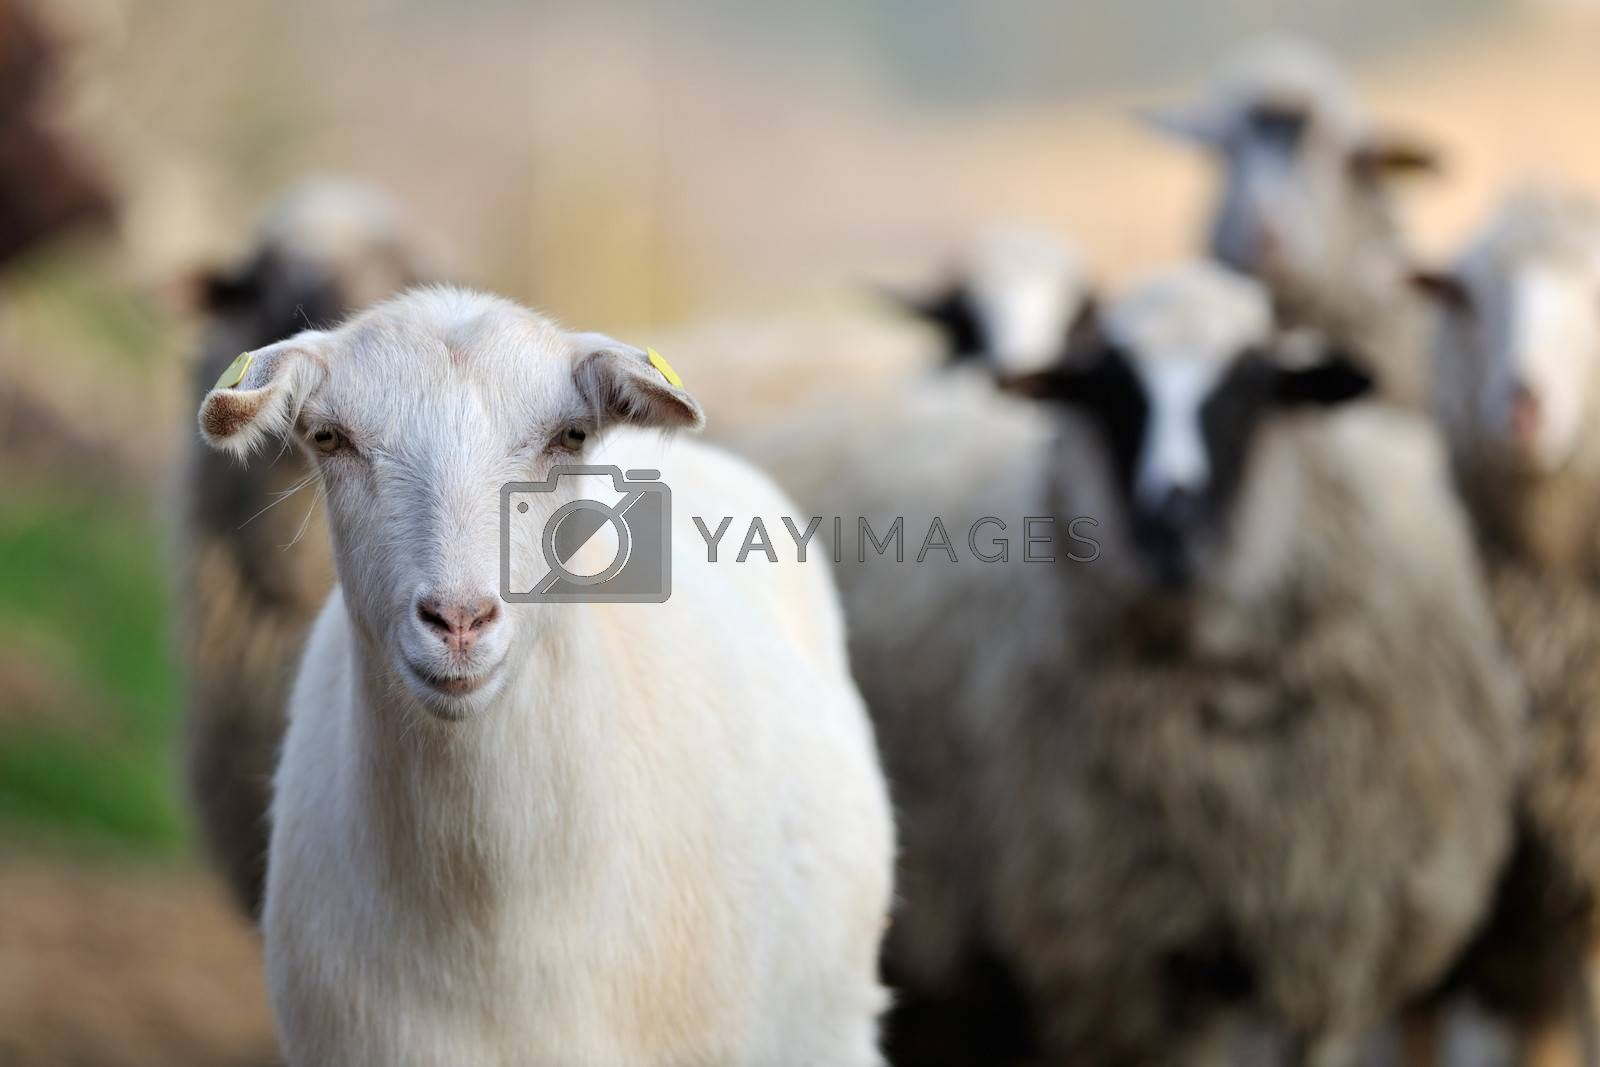 Goat and sheep flock of domestic animals